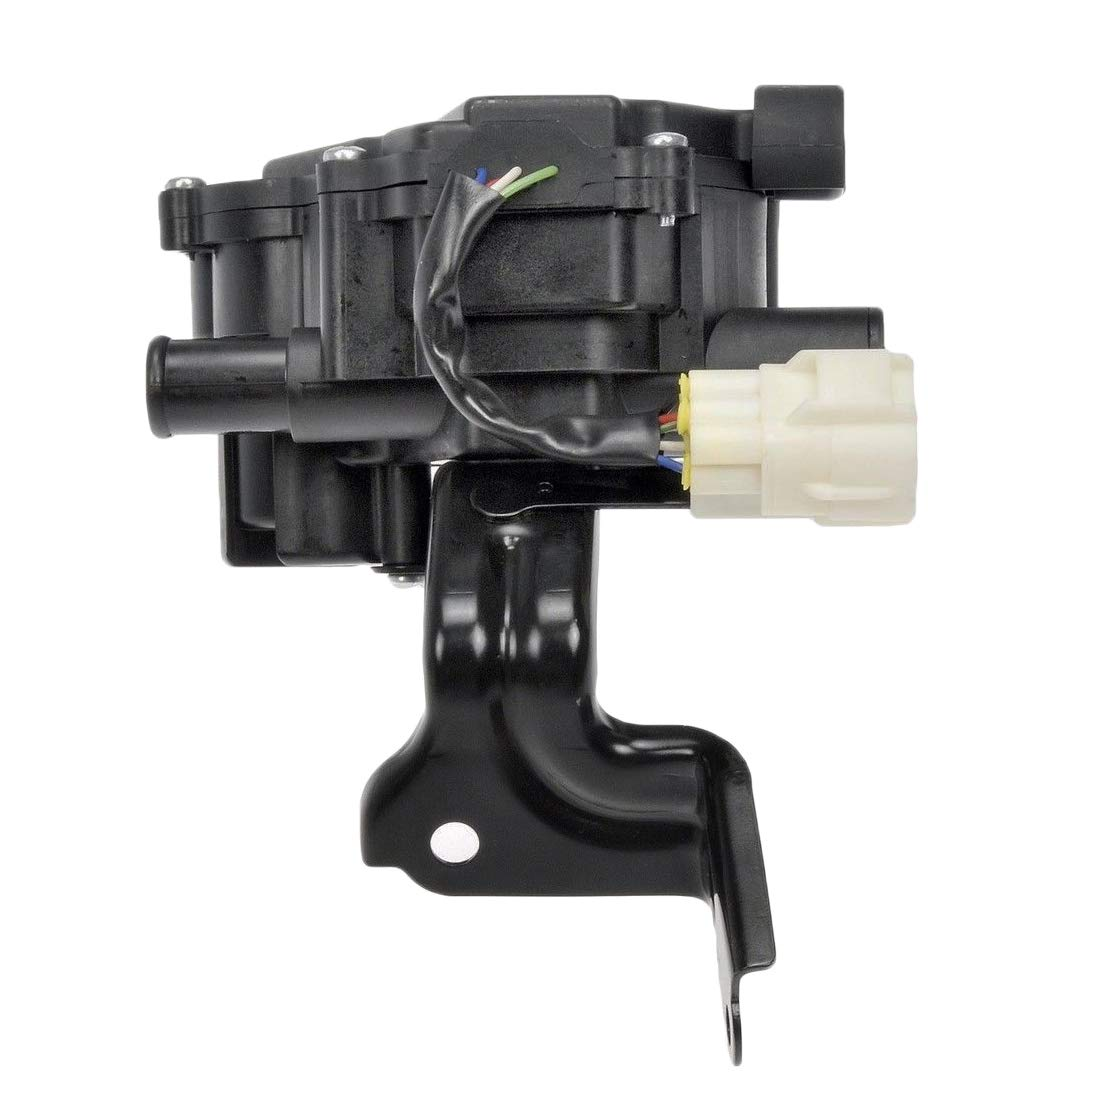 HVAC Heater Control Valve Water Valve for 2004-2009 Toyota Prius 1.5L Mr Fix Products